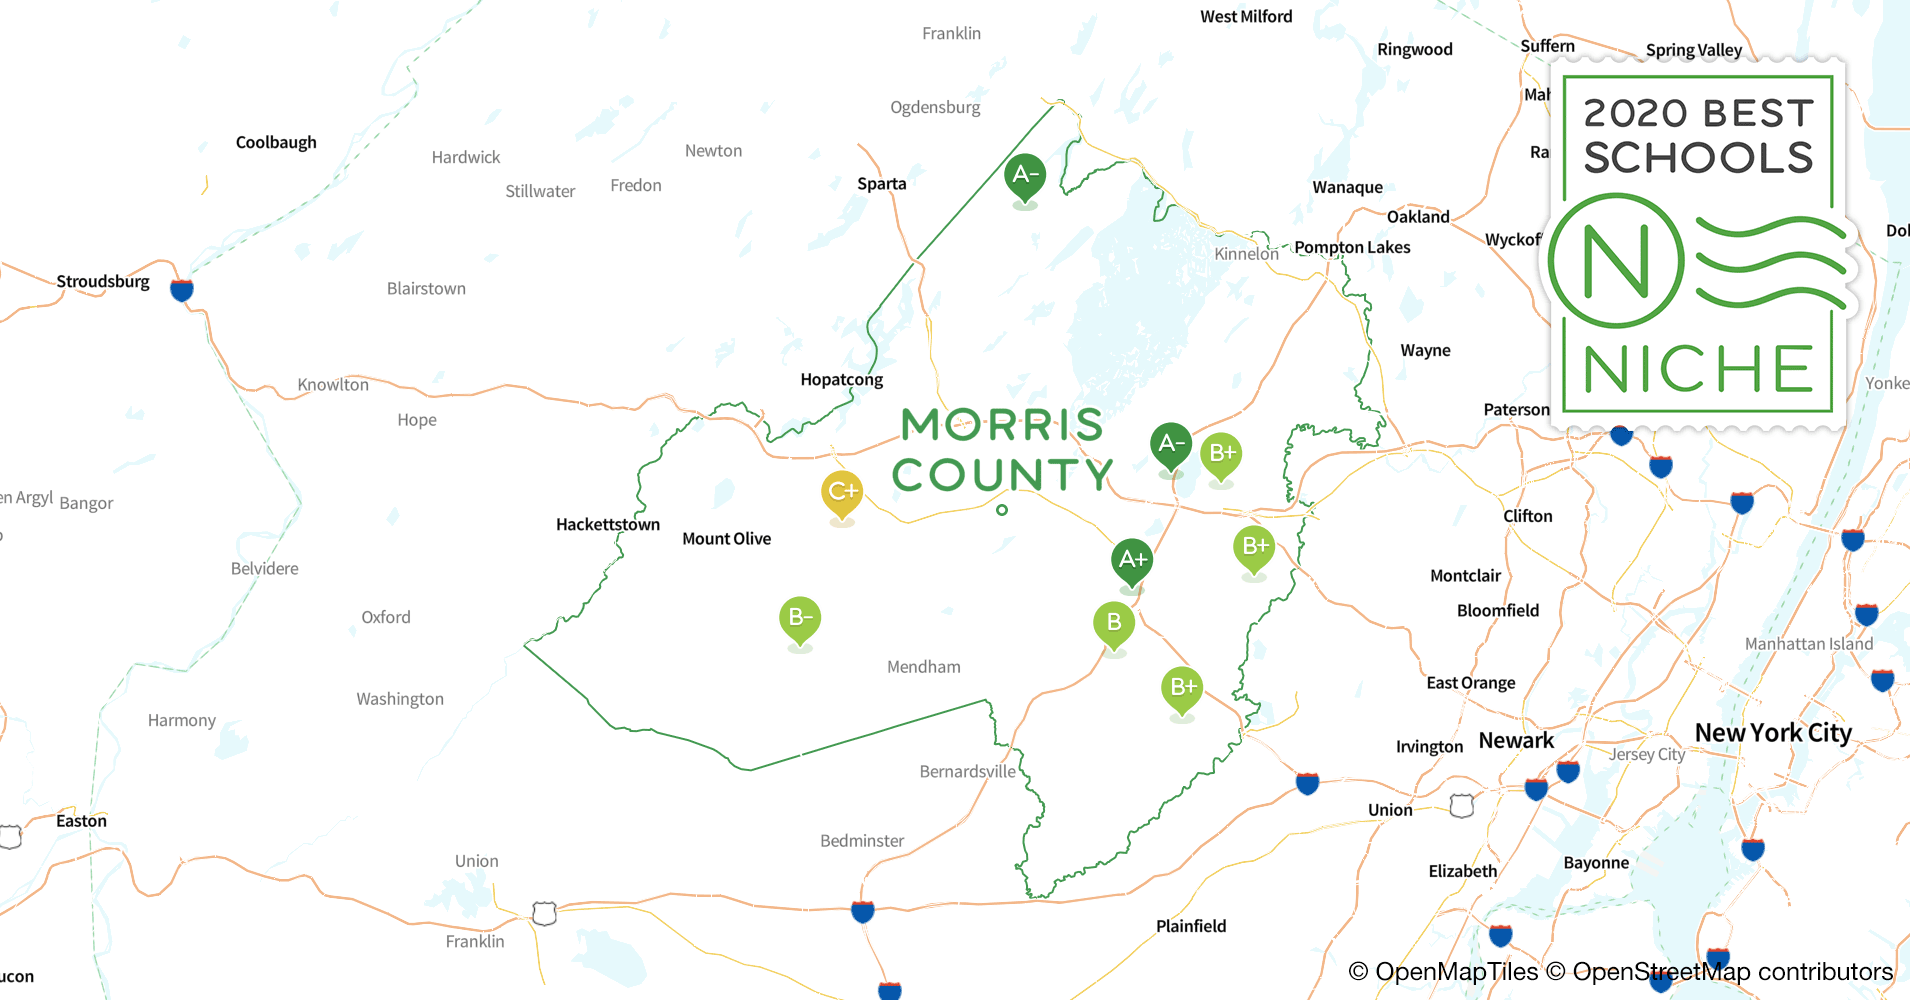 K-12 s in Morris County, NJ - Niche Map Of Es County Nj on map of nj districts, map of nj train stations, map of nj warren, map of nj town, map of nj elevation, map of nj by city, map sc county, map of nj hunting zones, map of nj shoreline, map of nj jackson, map of nj interstates, new york nj county, map of nj coast, map of nj township, map of nj colony, map of nj utilities, map of nj regions, map of nj counties, map of nj state, map nc county,